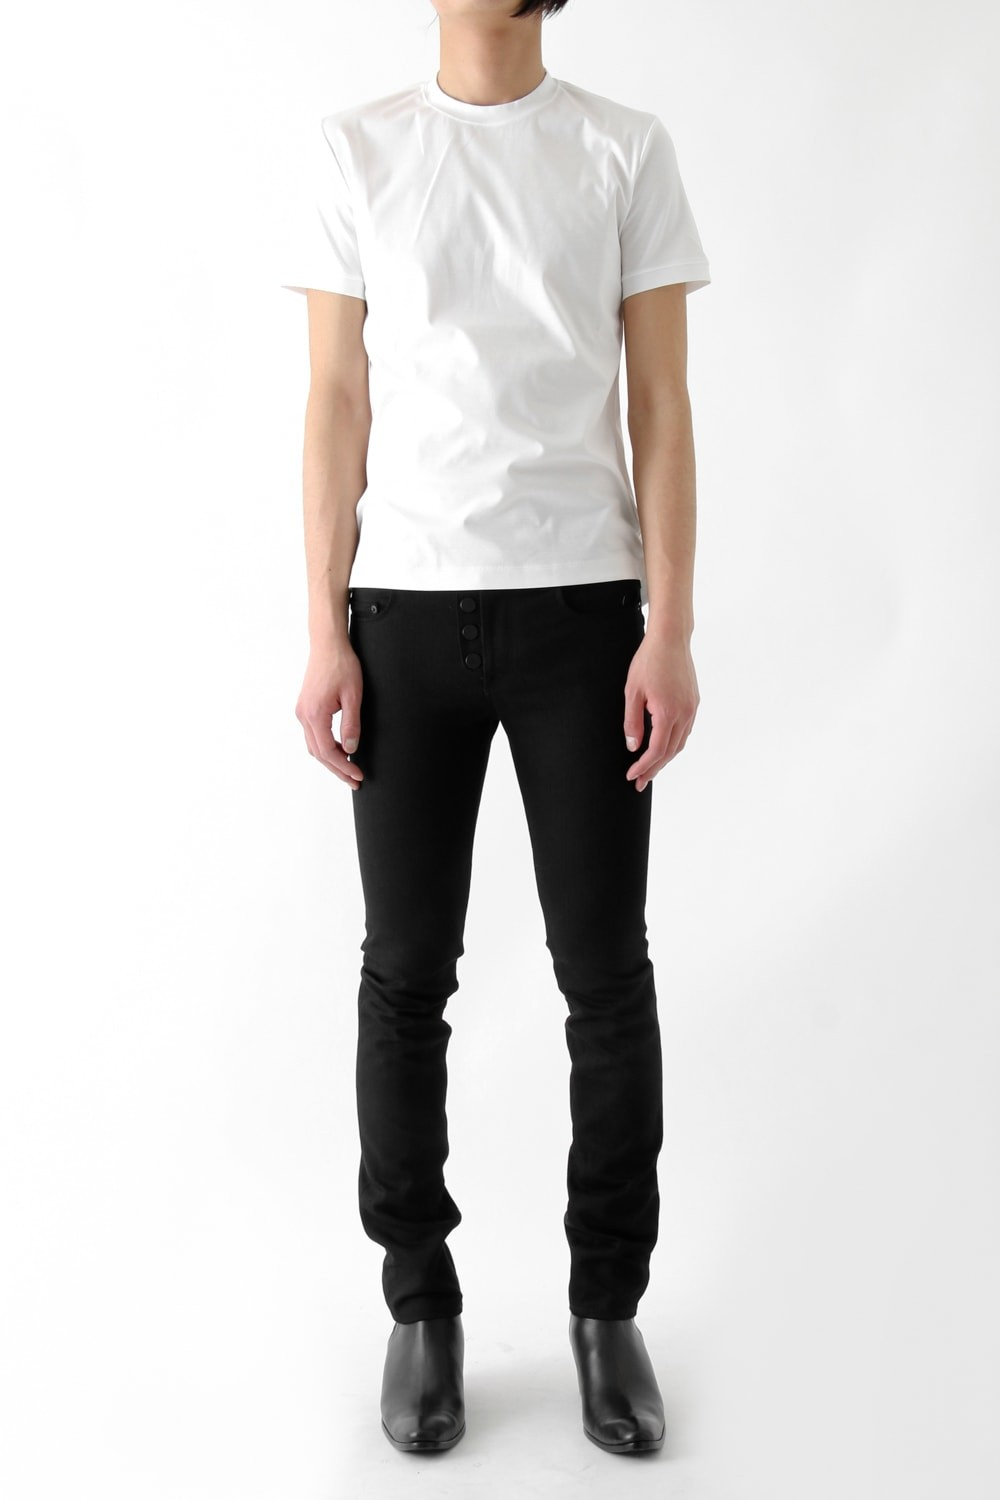 17SS STANDARD : S 001 RIGID DENIM BLACK